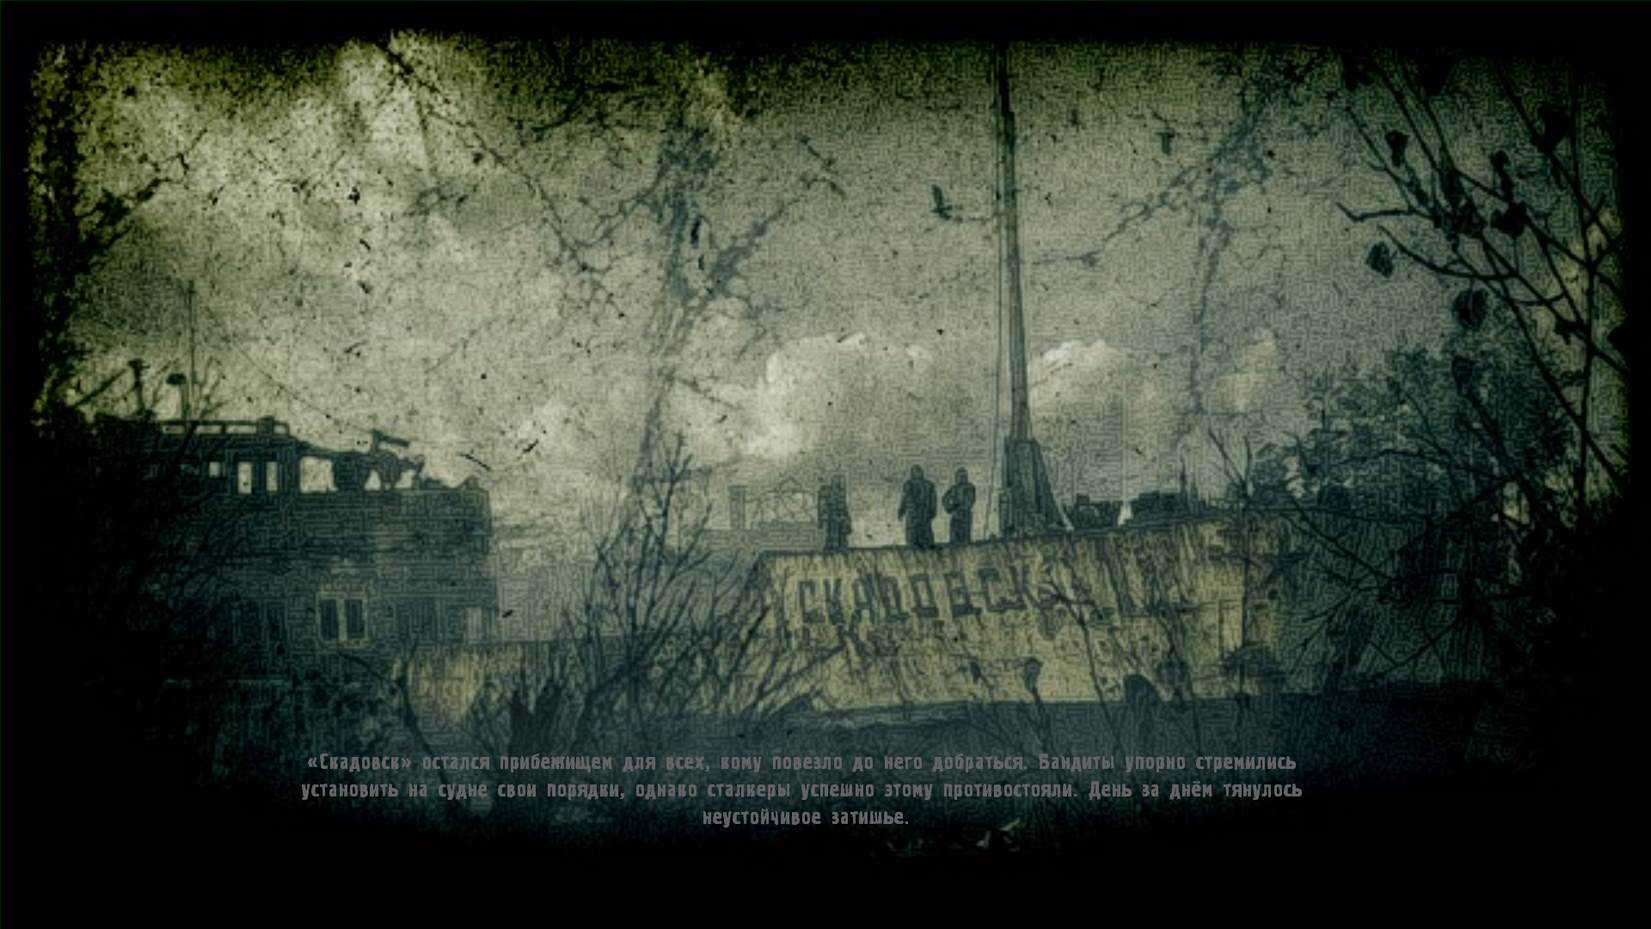 S.T.A.L.K.E.R.: Call of Pripyat - S.T.A.L.K.E.R.: Call of Pripyat Скриншот